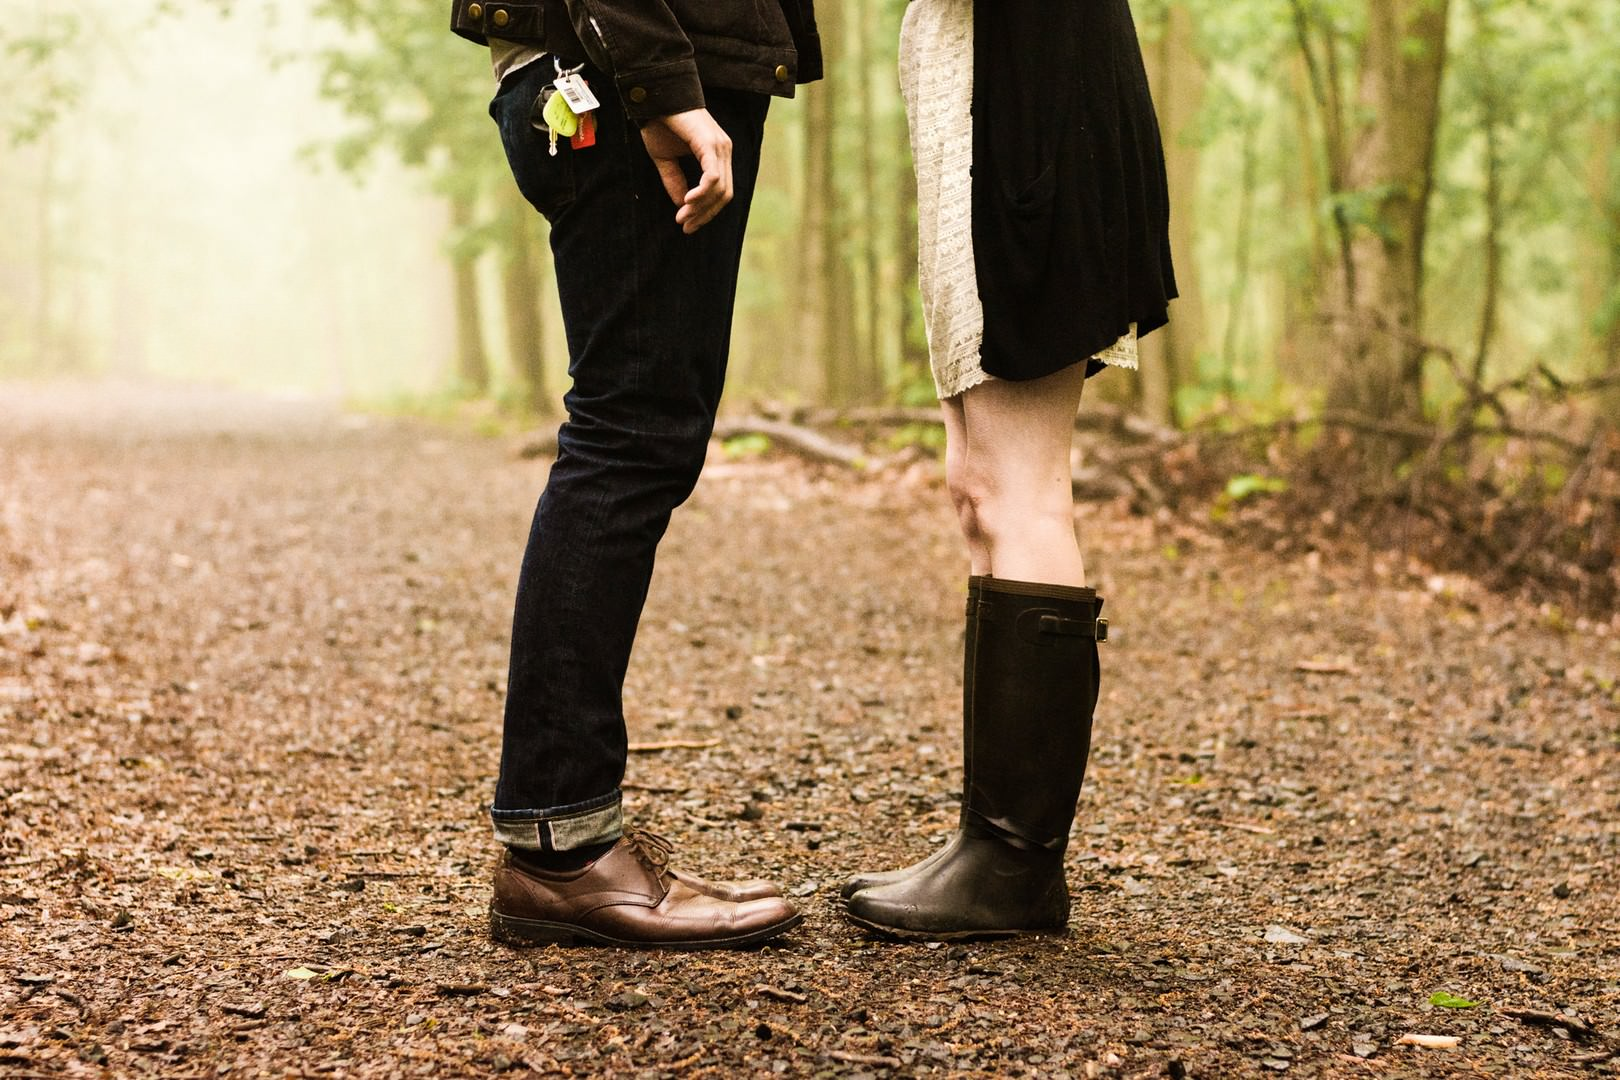 -hipster-couple-feet-boots-woods-forest-engagement-photos-nj-wedding ...